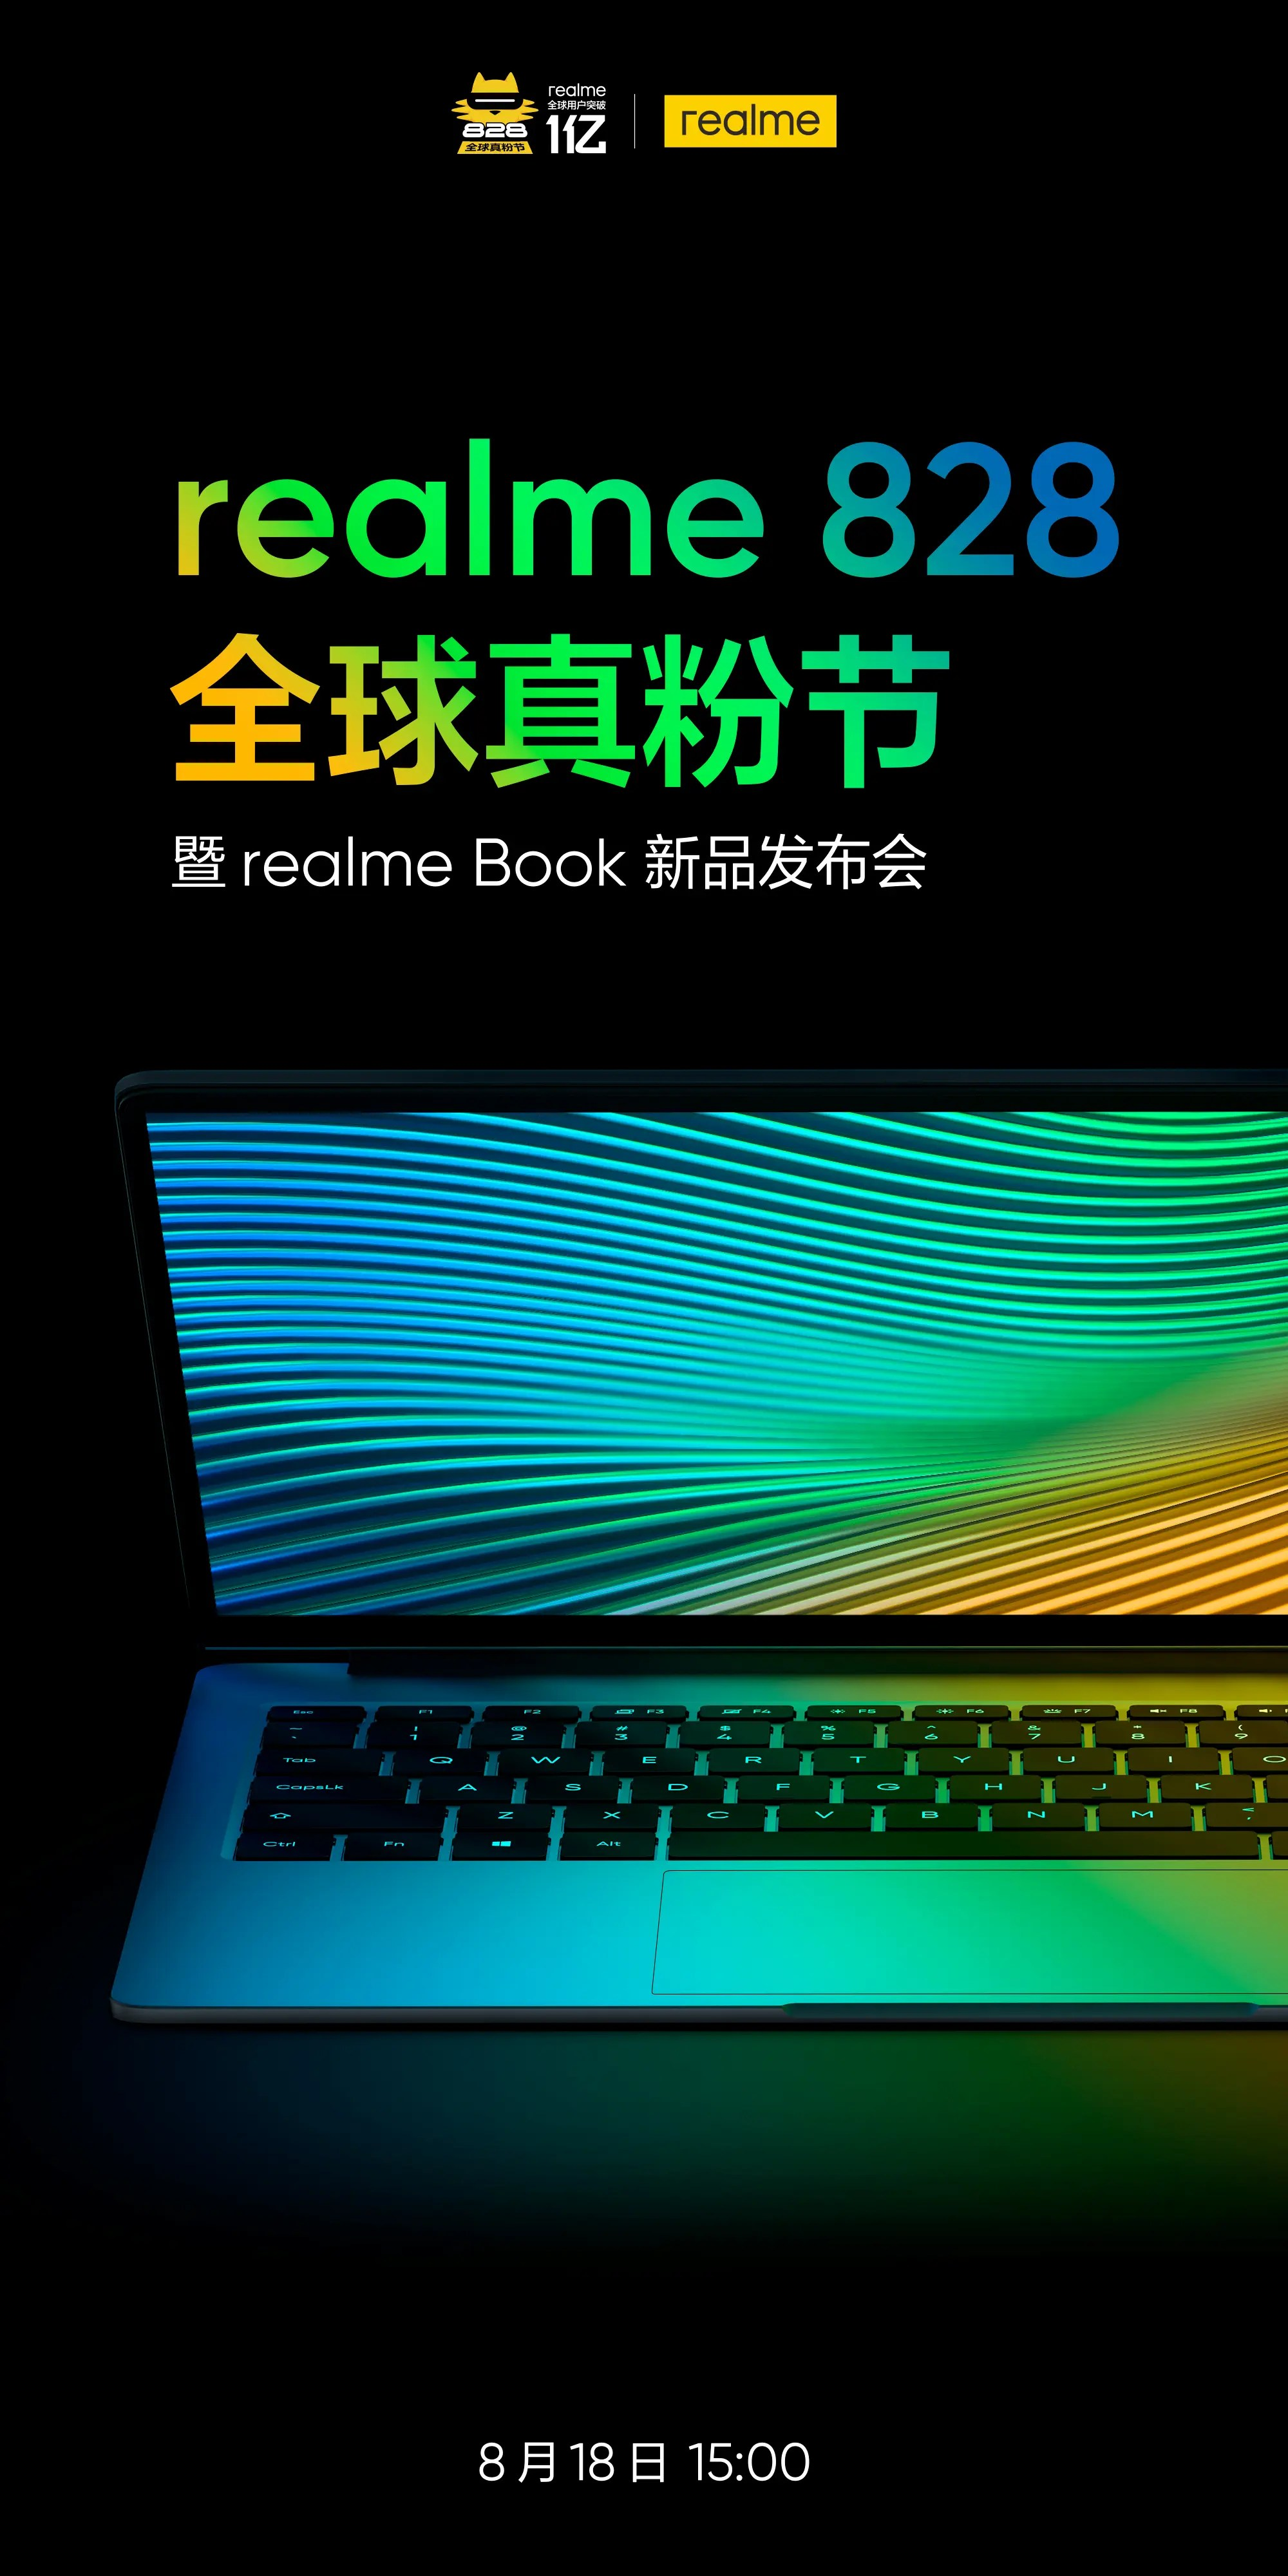 Realme Book Release Date and Time